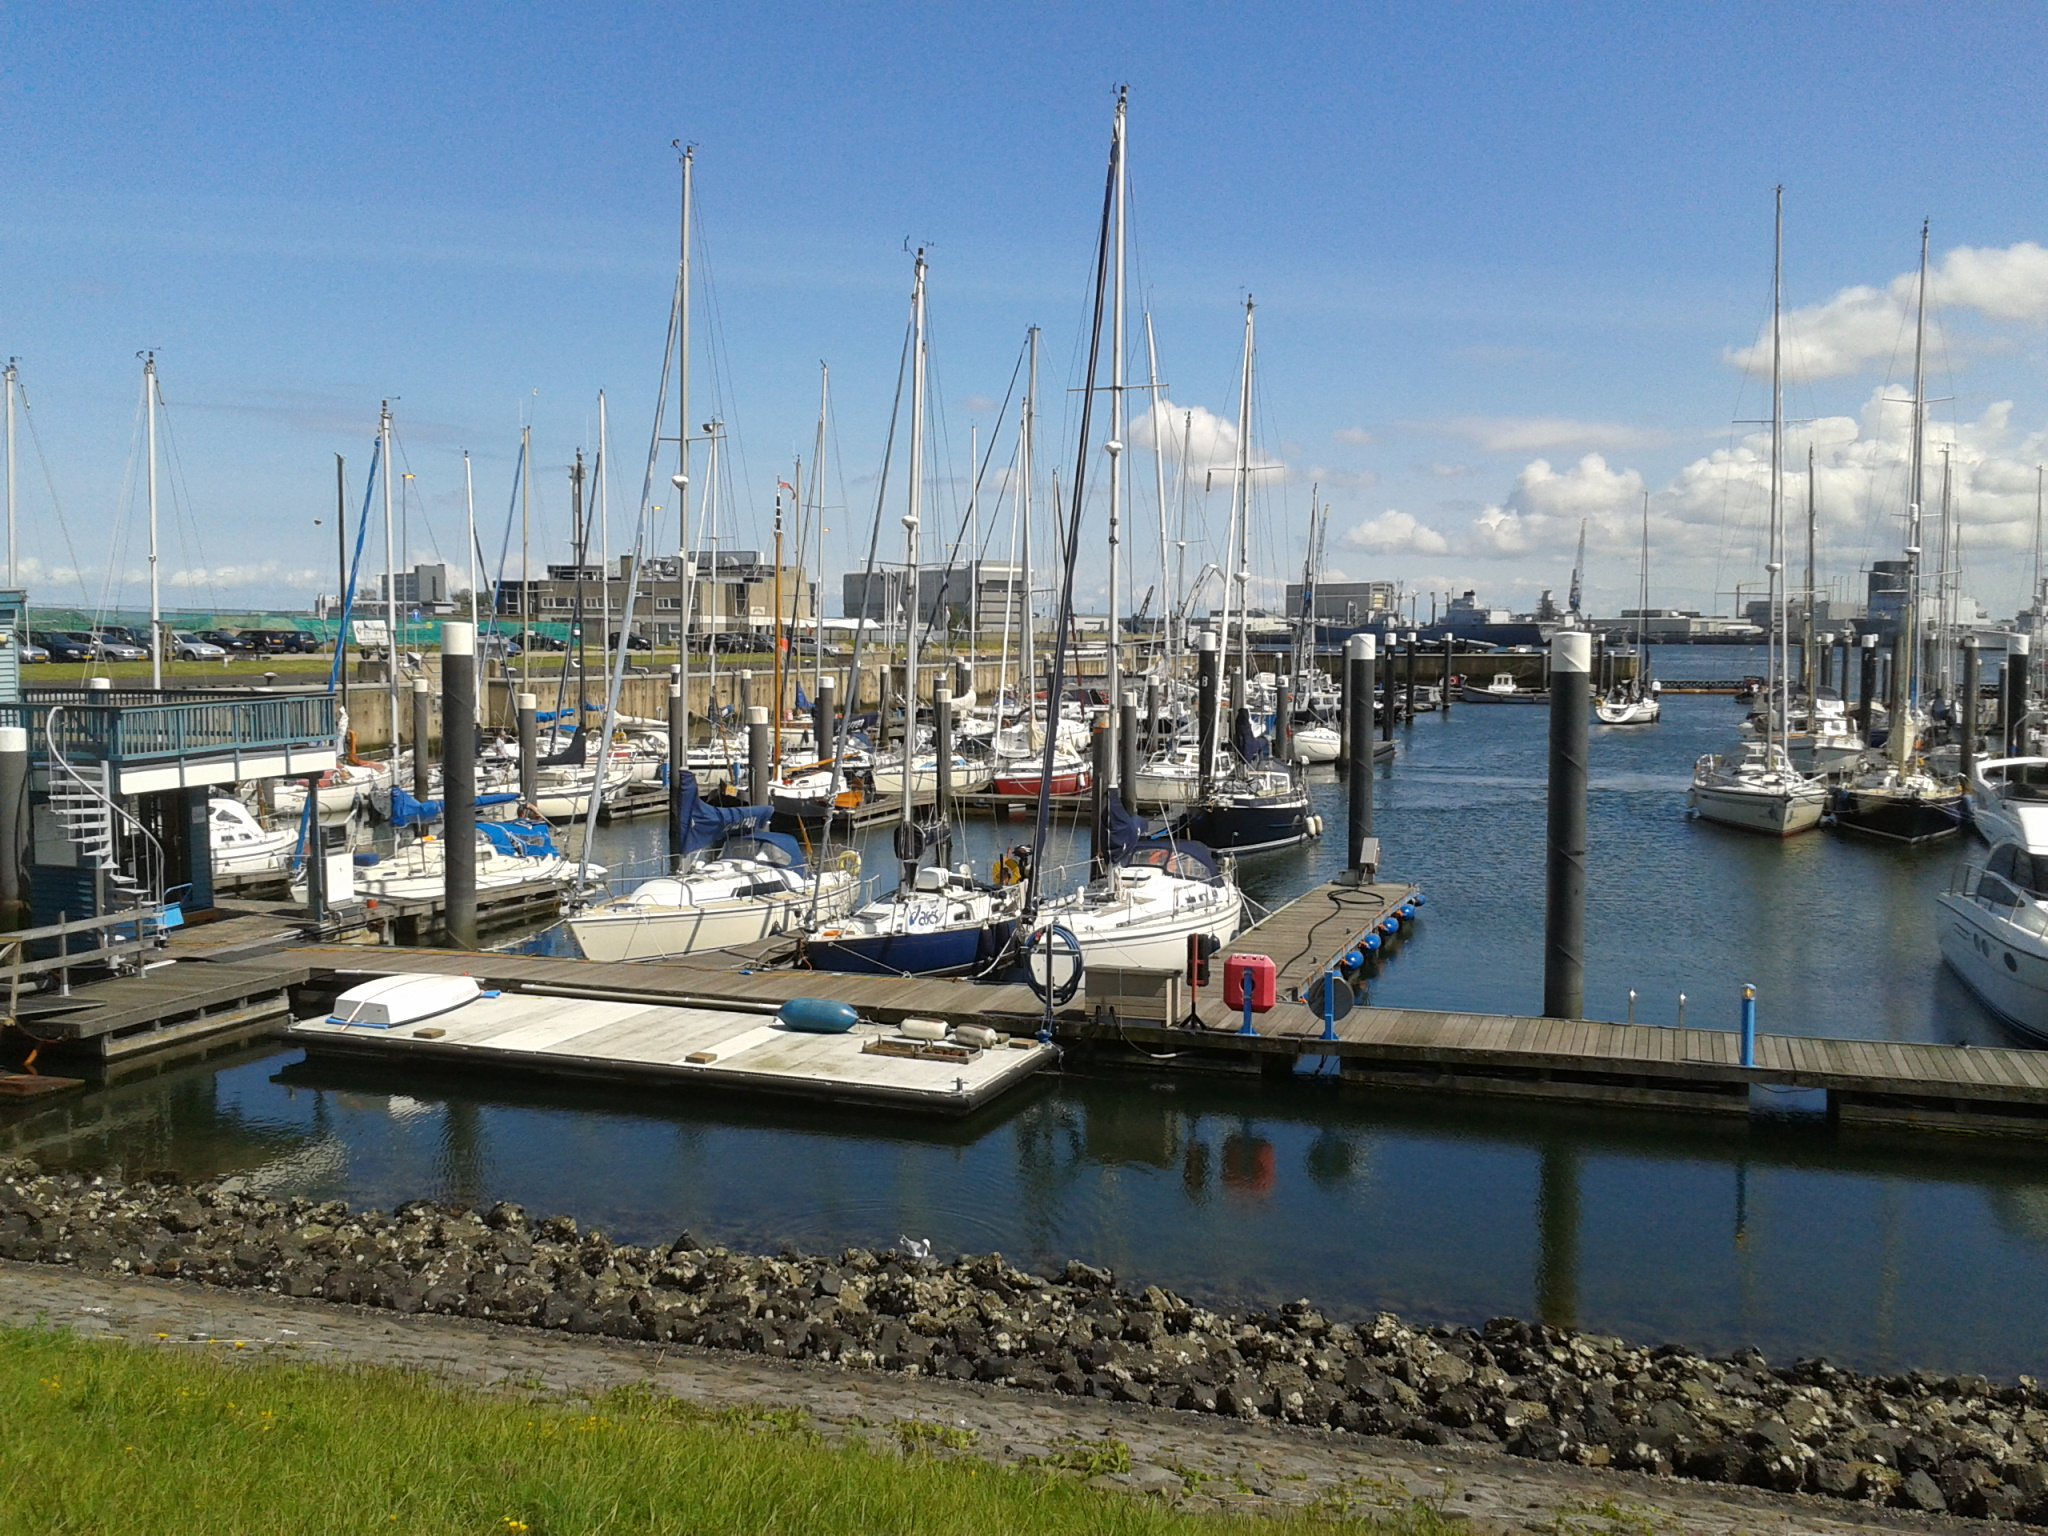 Royal Netherlands Navy Yacht Club, Den Helder